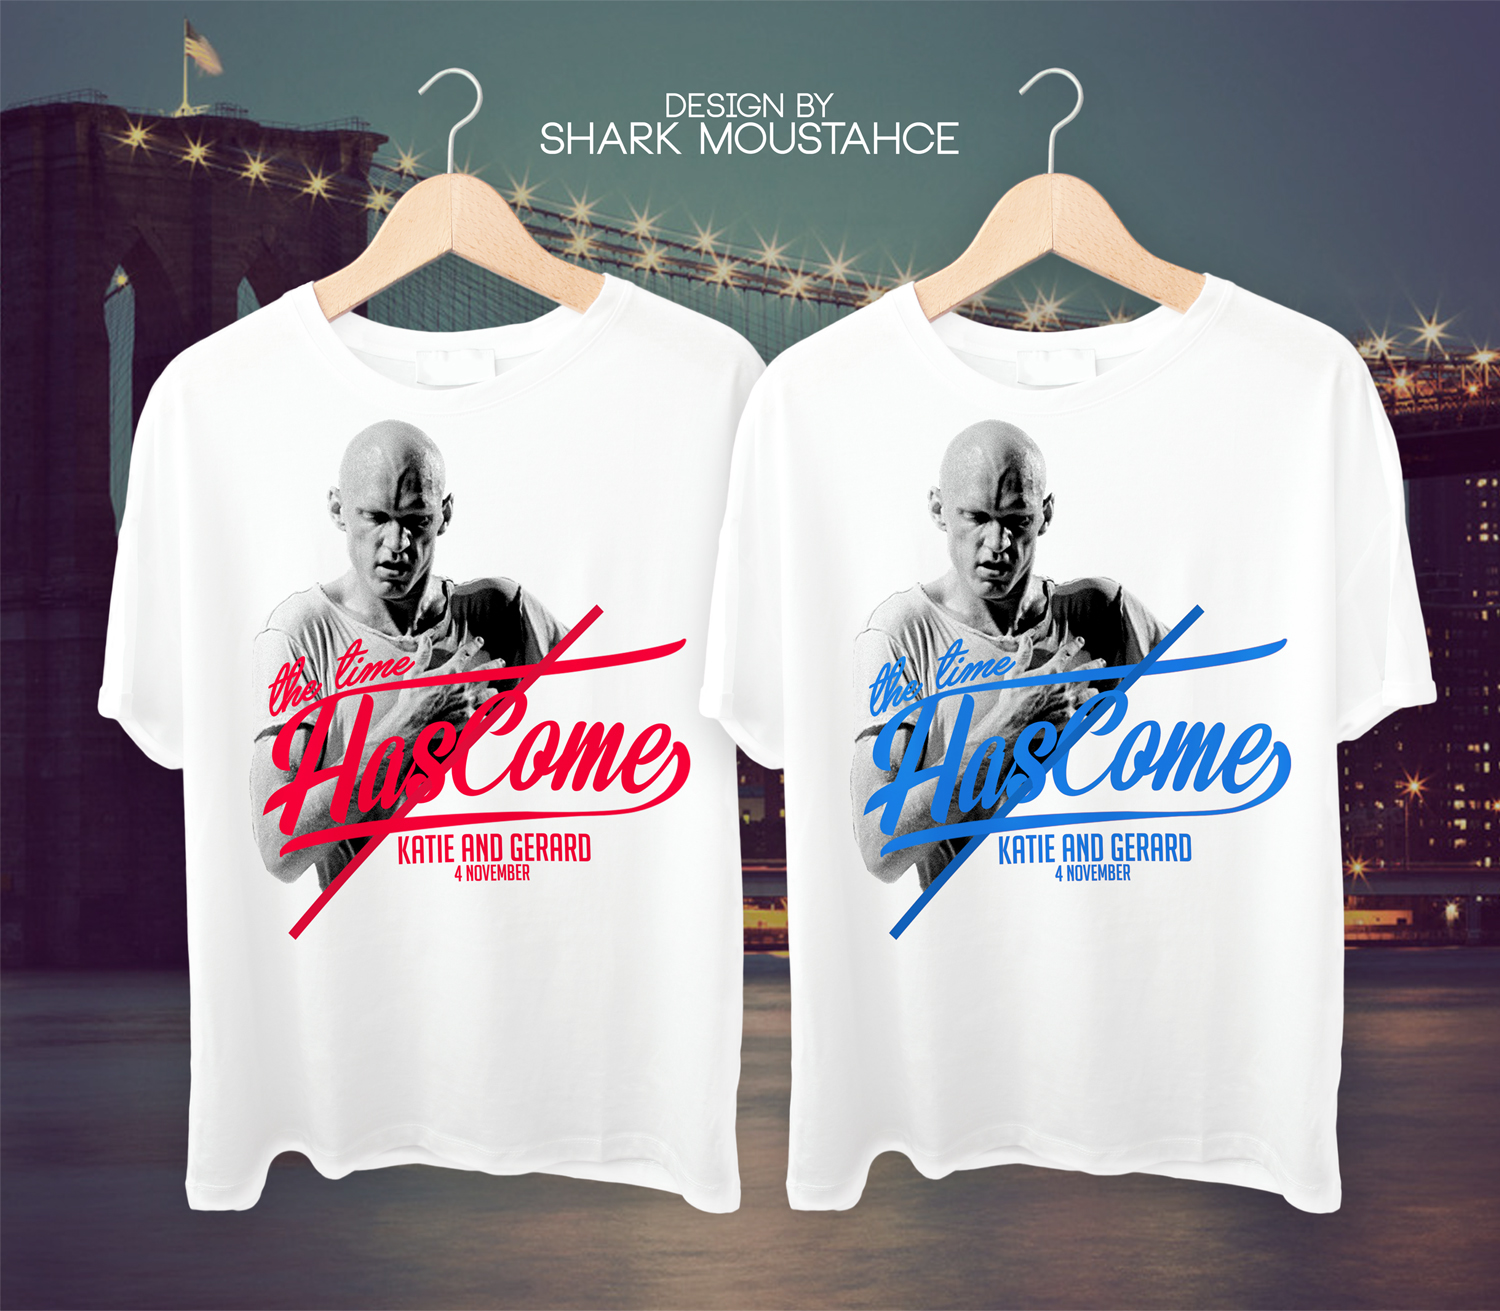 Personable Playful Wedding T Shirt Design For A Company By